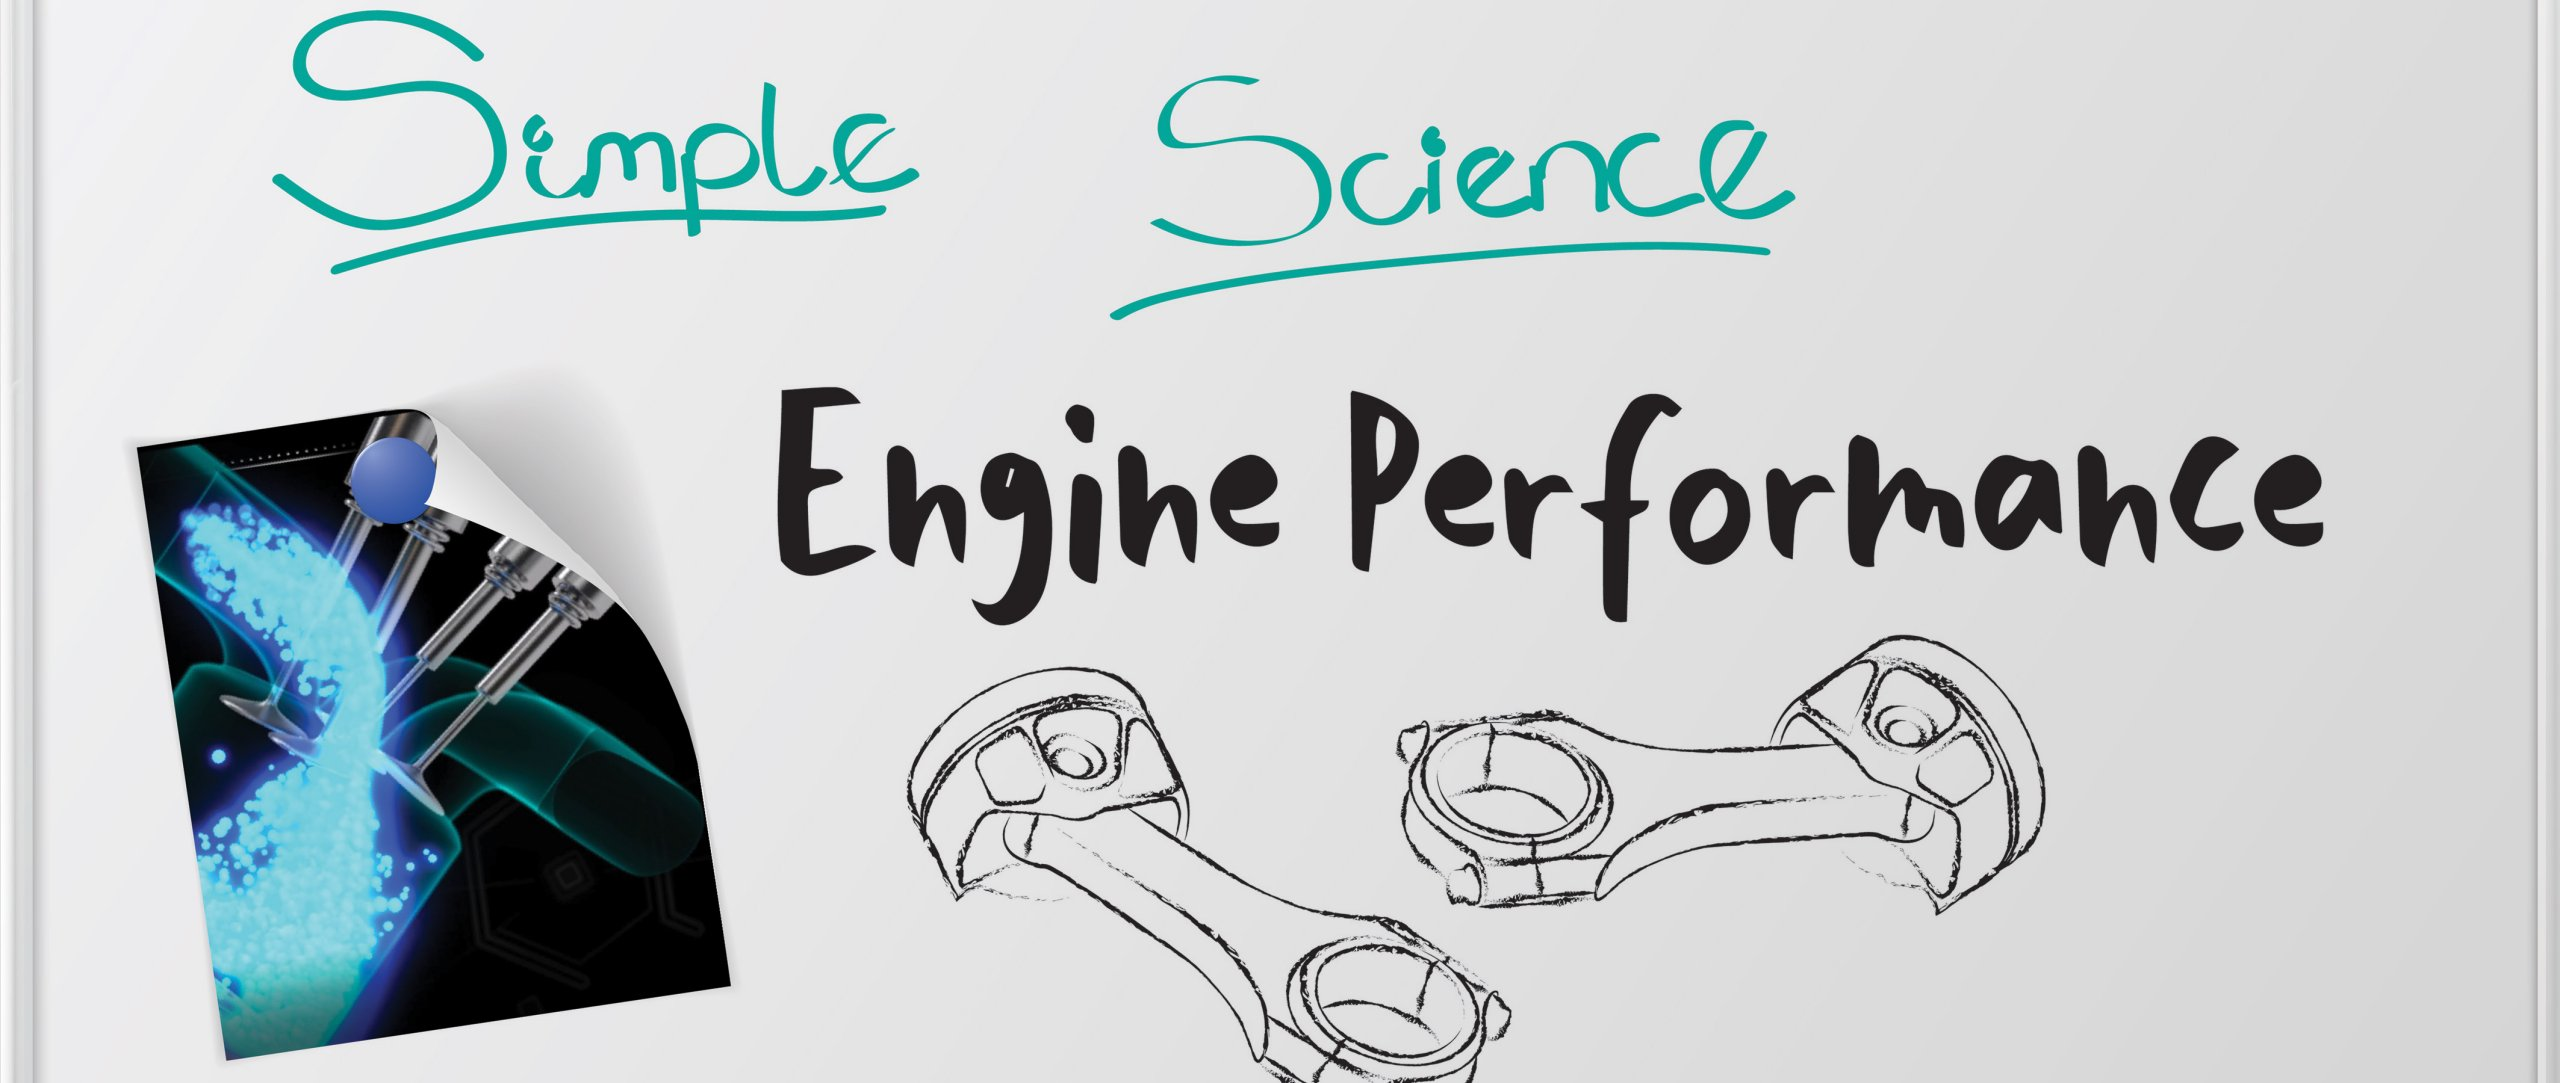 MF1_200513_SimpleScience_Engine_Performance_16x9-03_4252